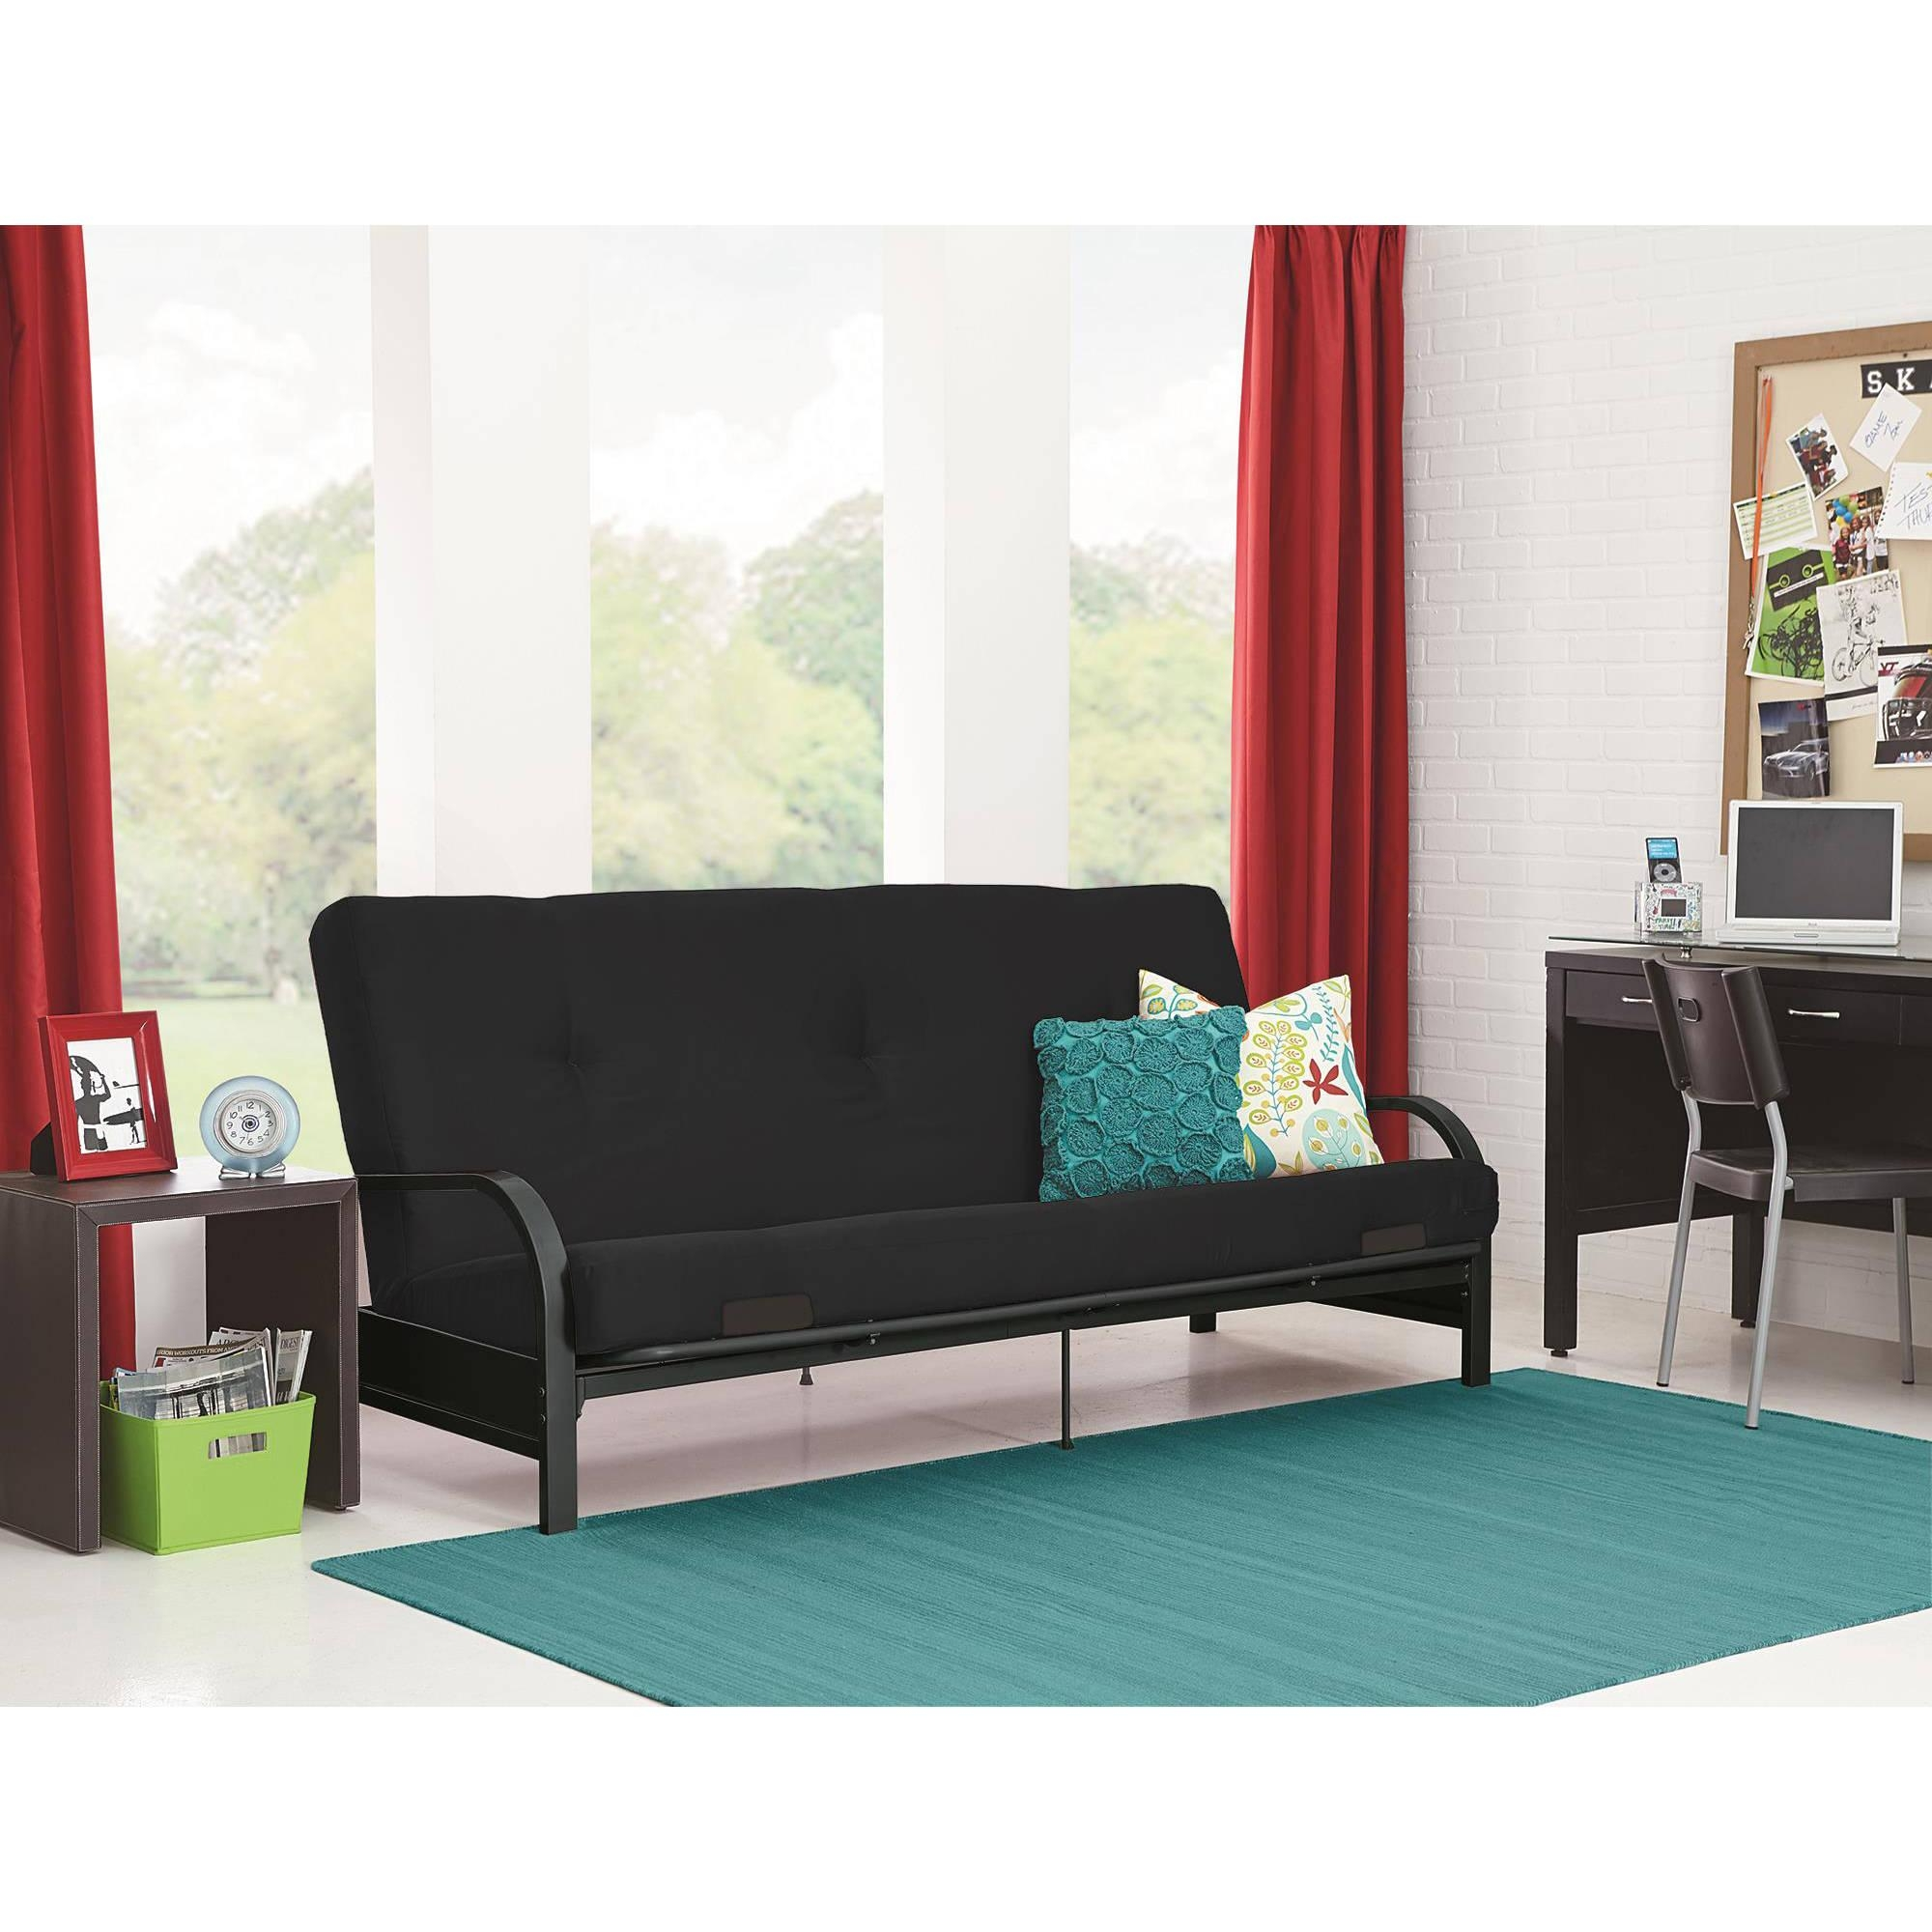 Mainstays Black Metal Arm Futon With Full Size Mattress – Walmart With Regard To Mainstays Sleeper Sofas (View 8 of 20)